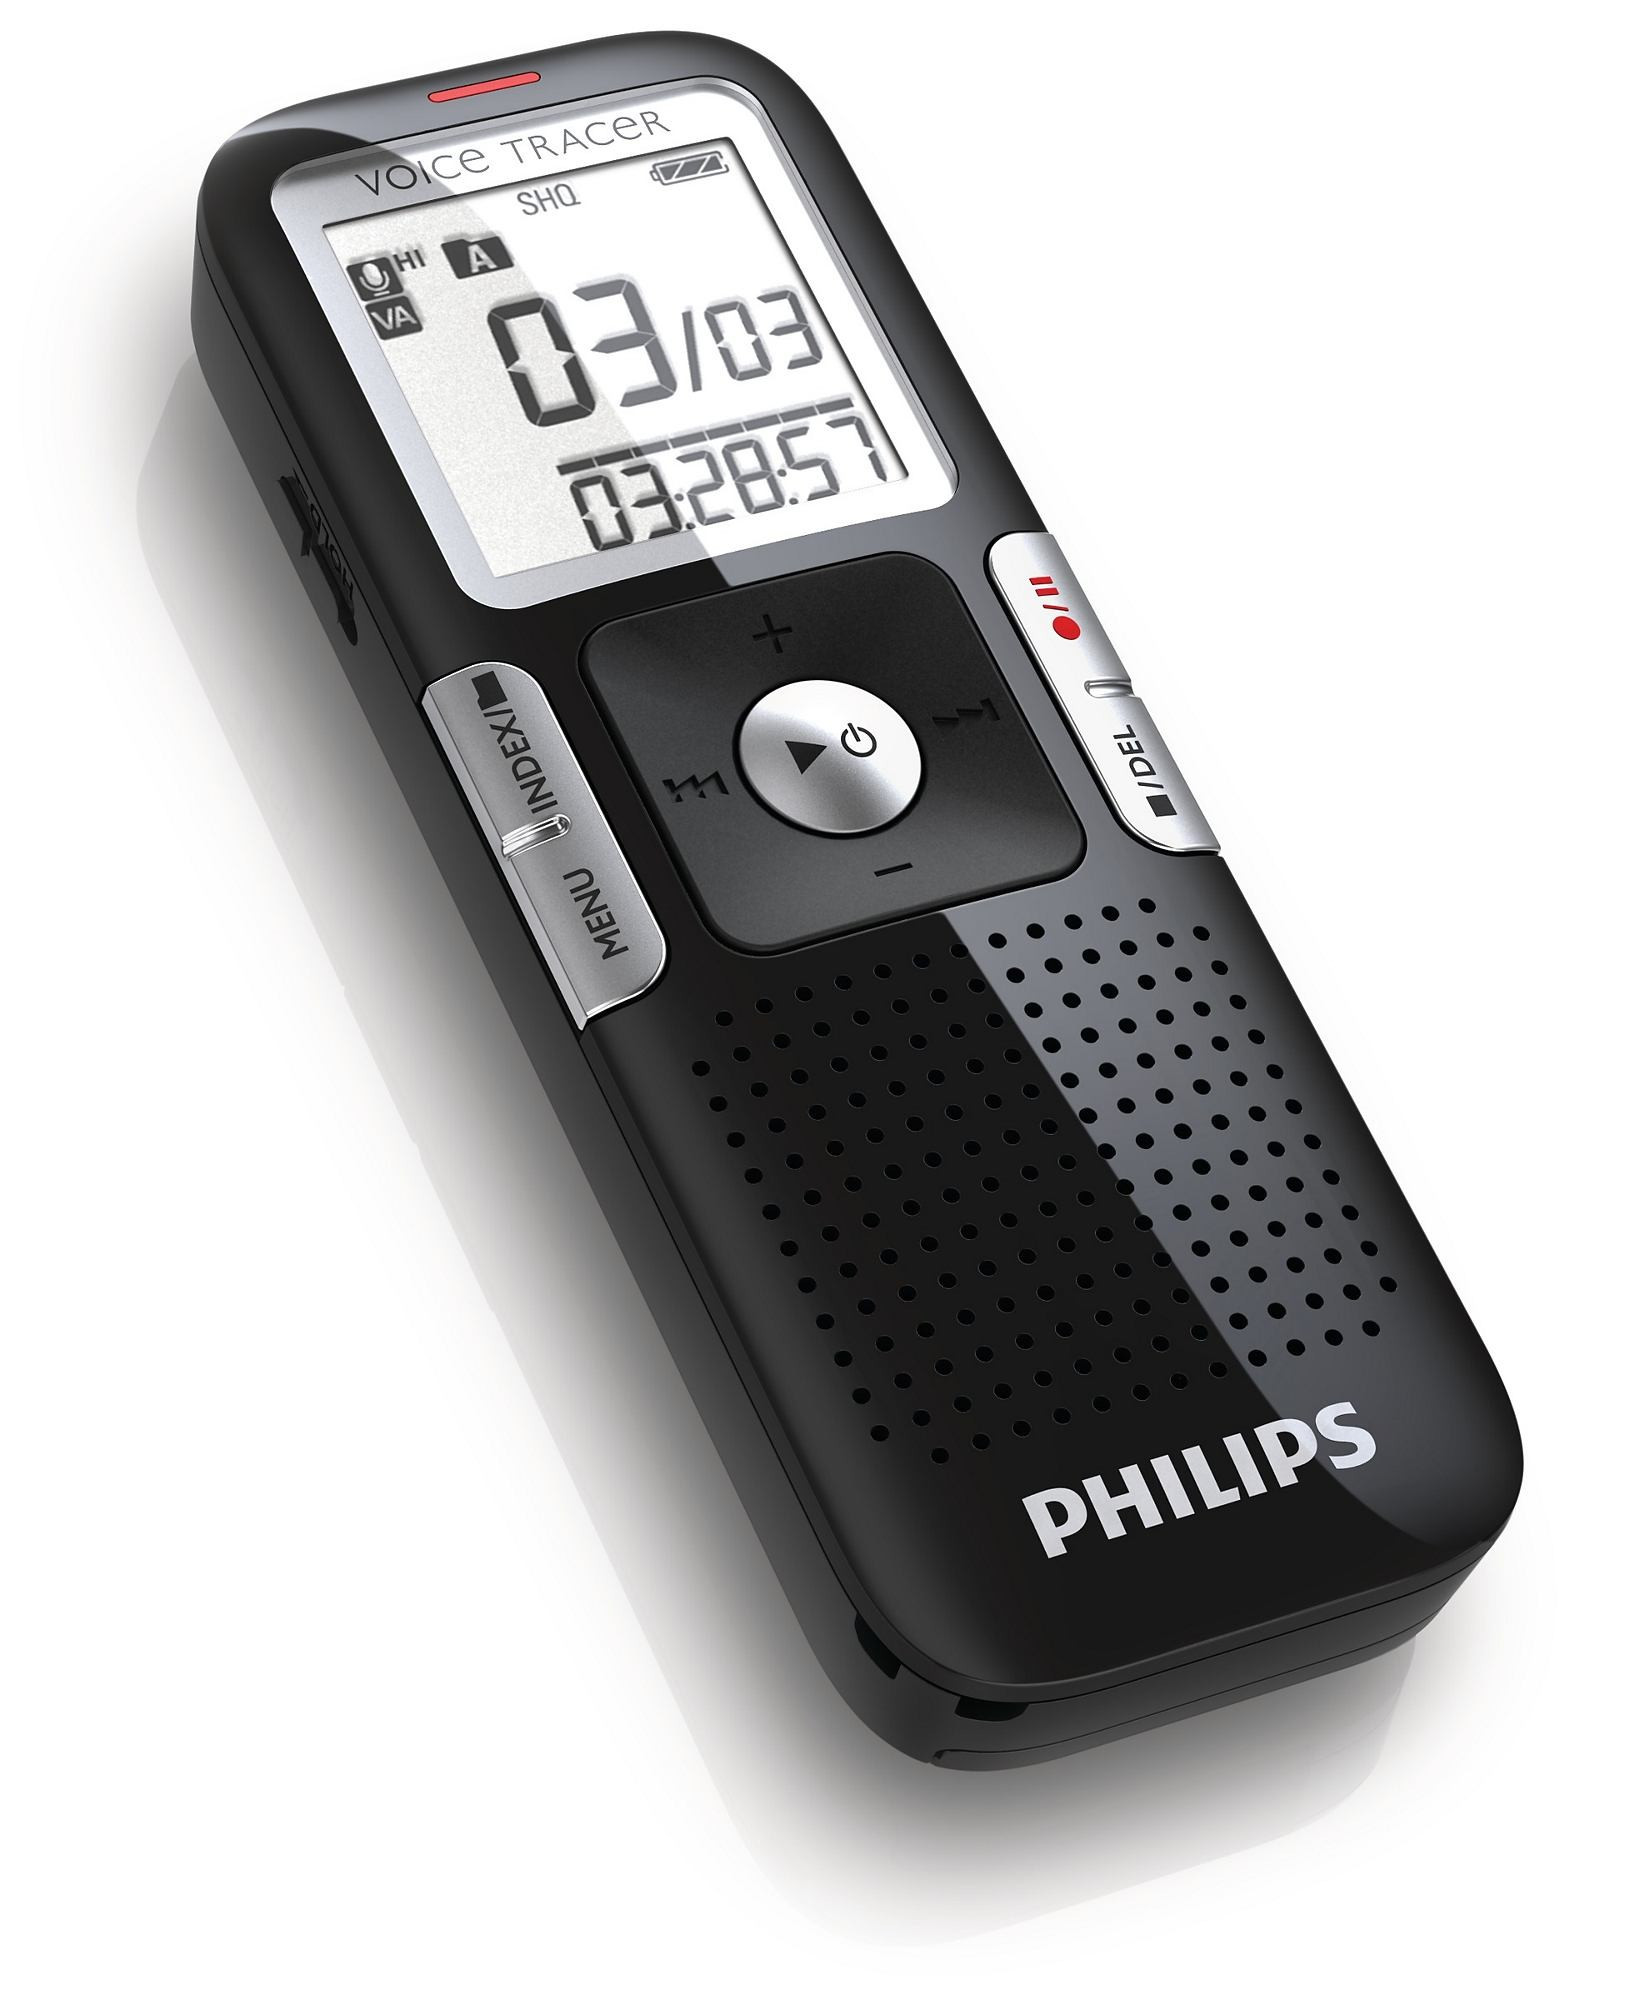 Philips LFH0645 Voice Tracer digital diktafon